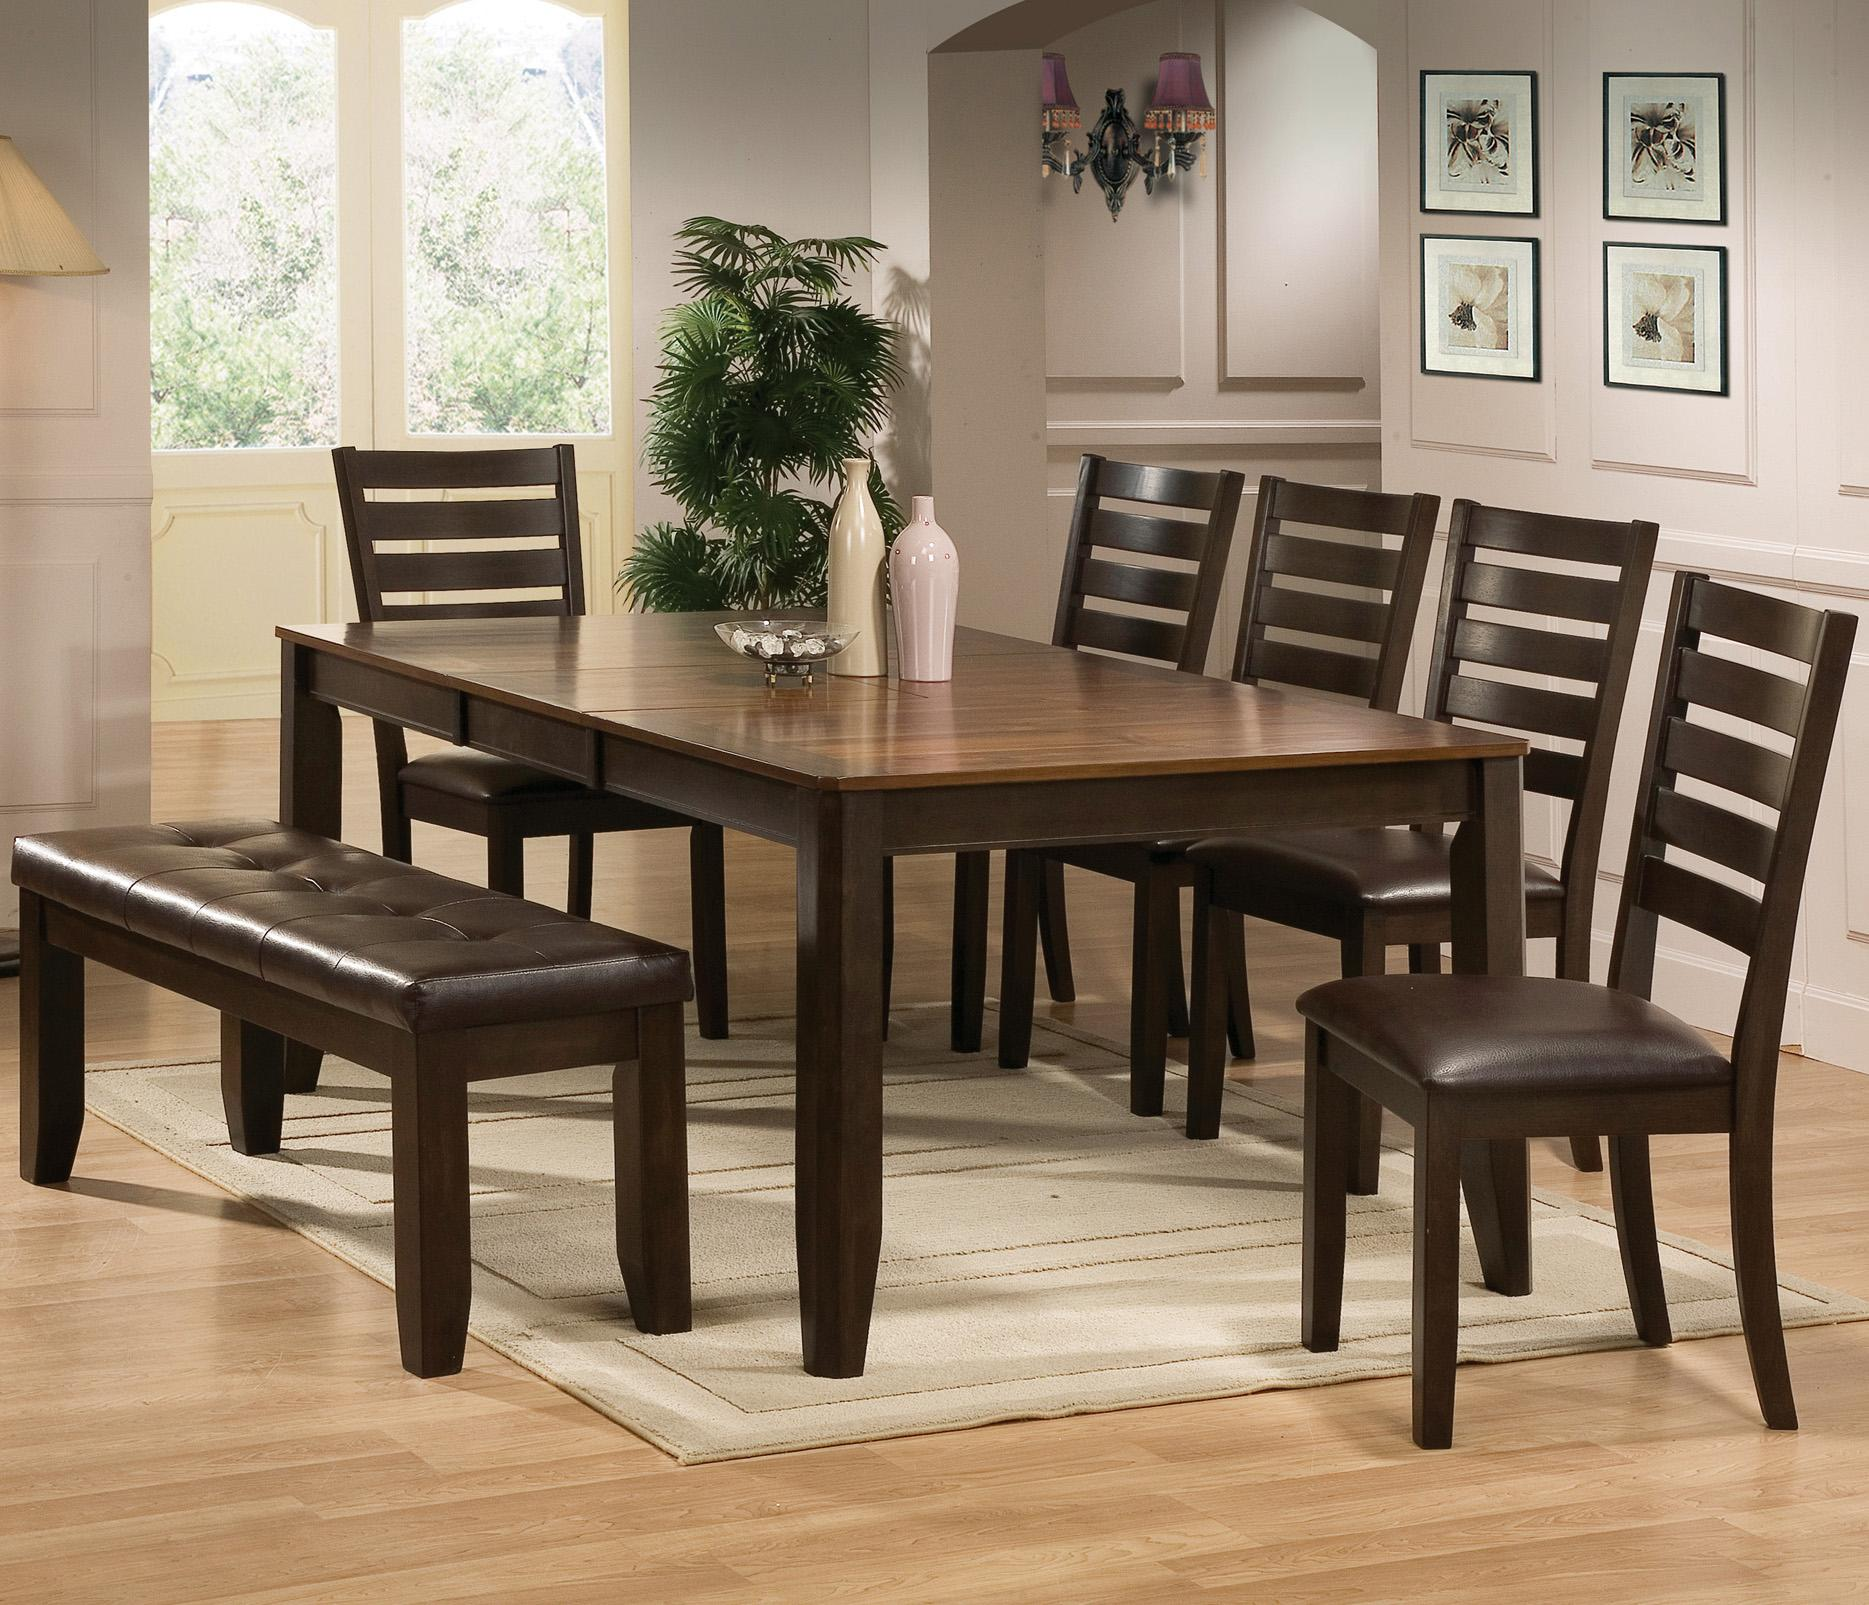 Crown mark elliott 7 piece dining table and chairs set for 7 piece dining set with bench